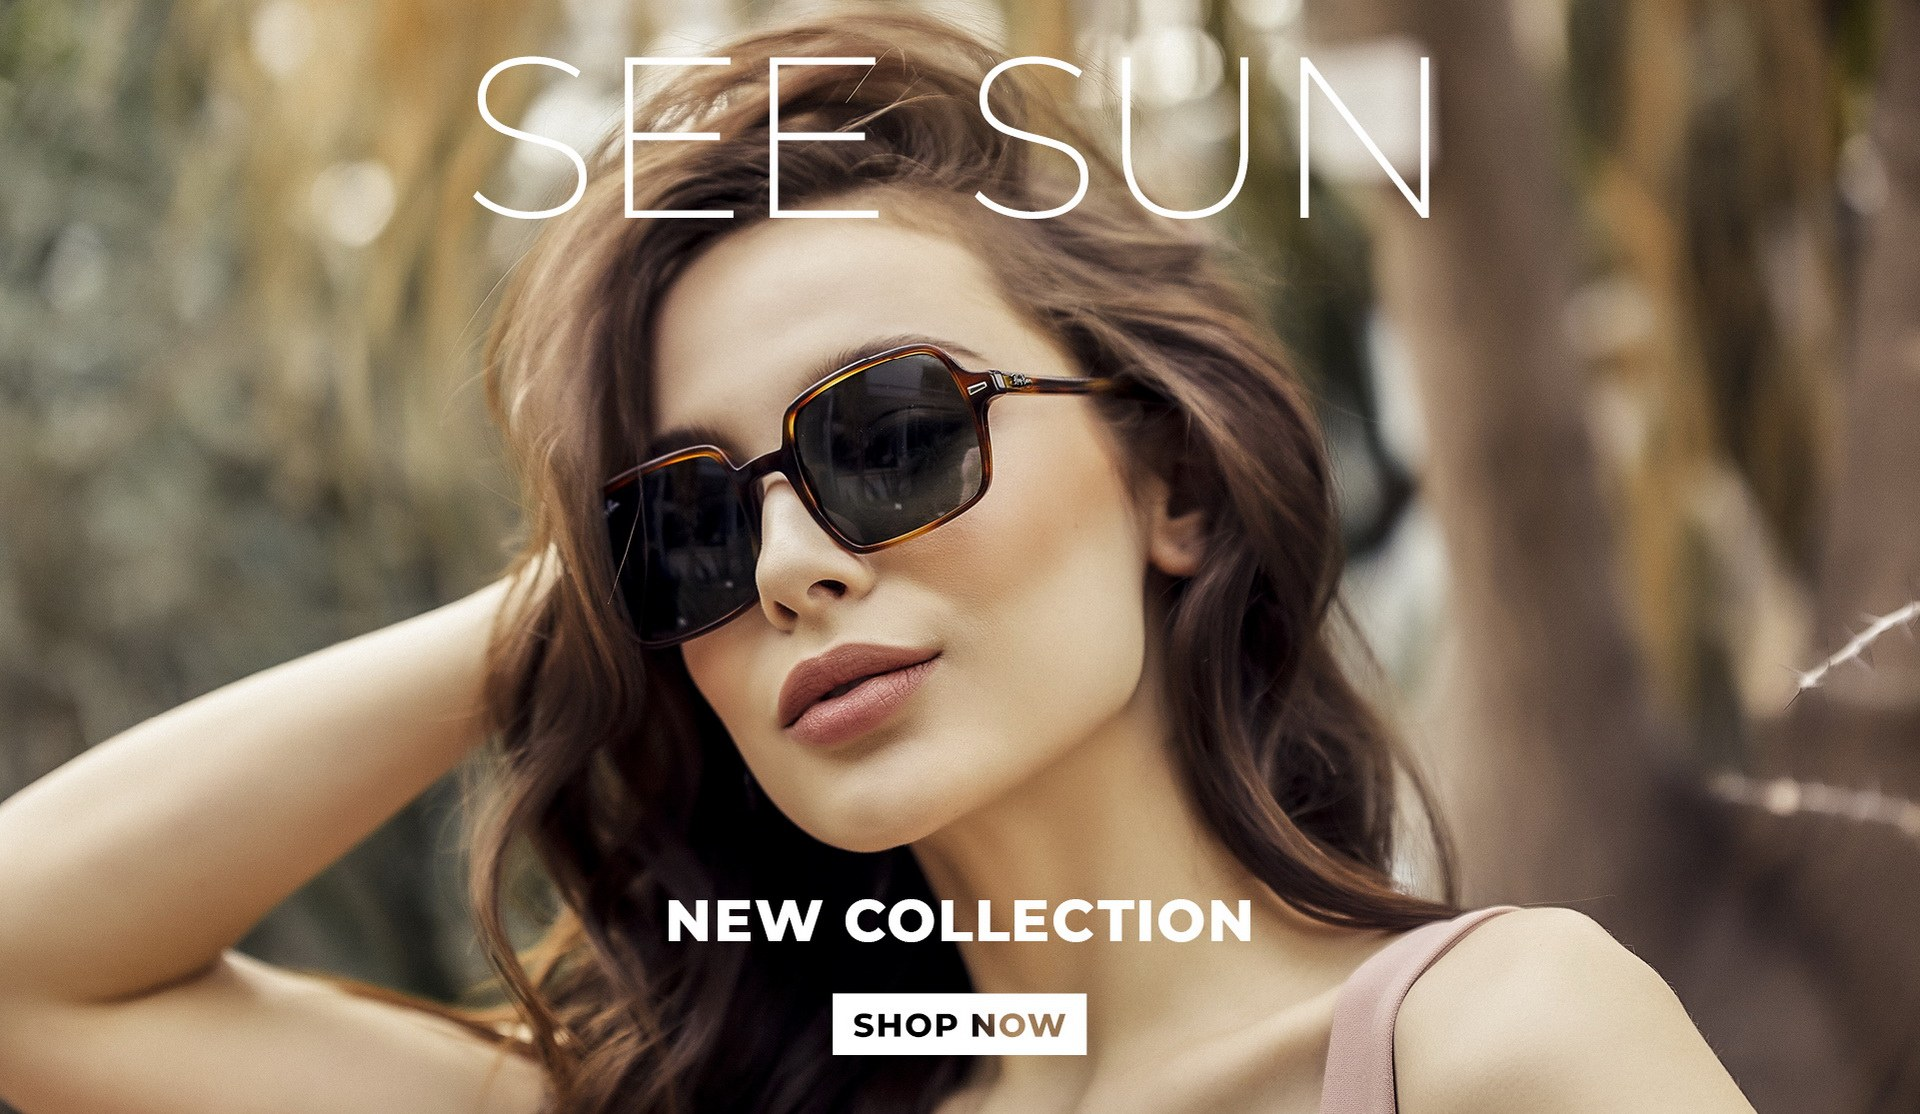 See Sun collection